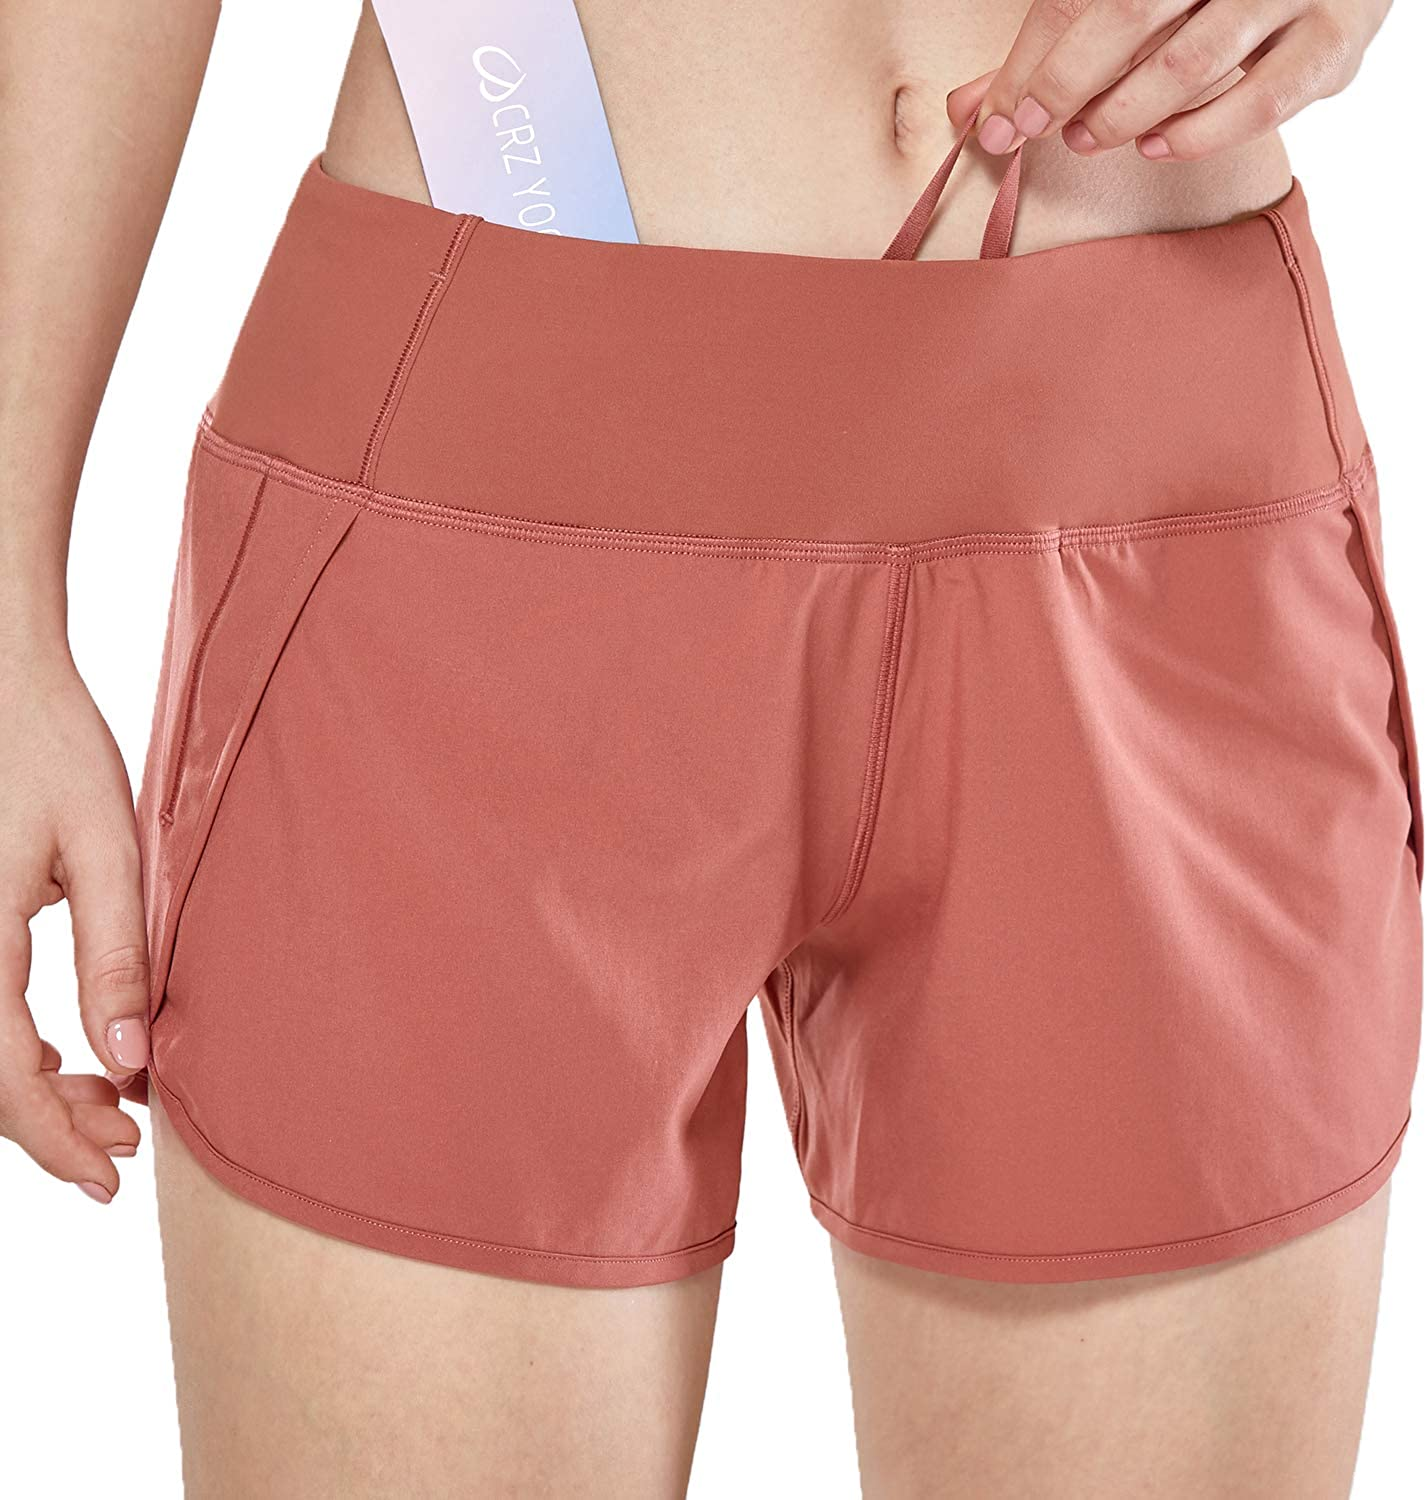 CRZ YOGA Womens Quick-Dry Athletic Sports Running Workout Shorts with Zip Pocket 4 Inches